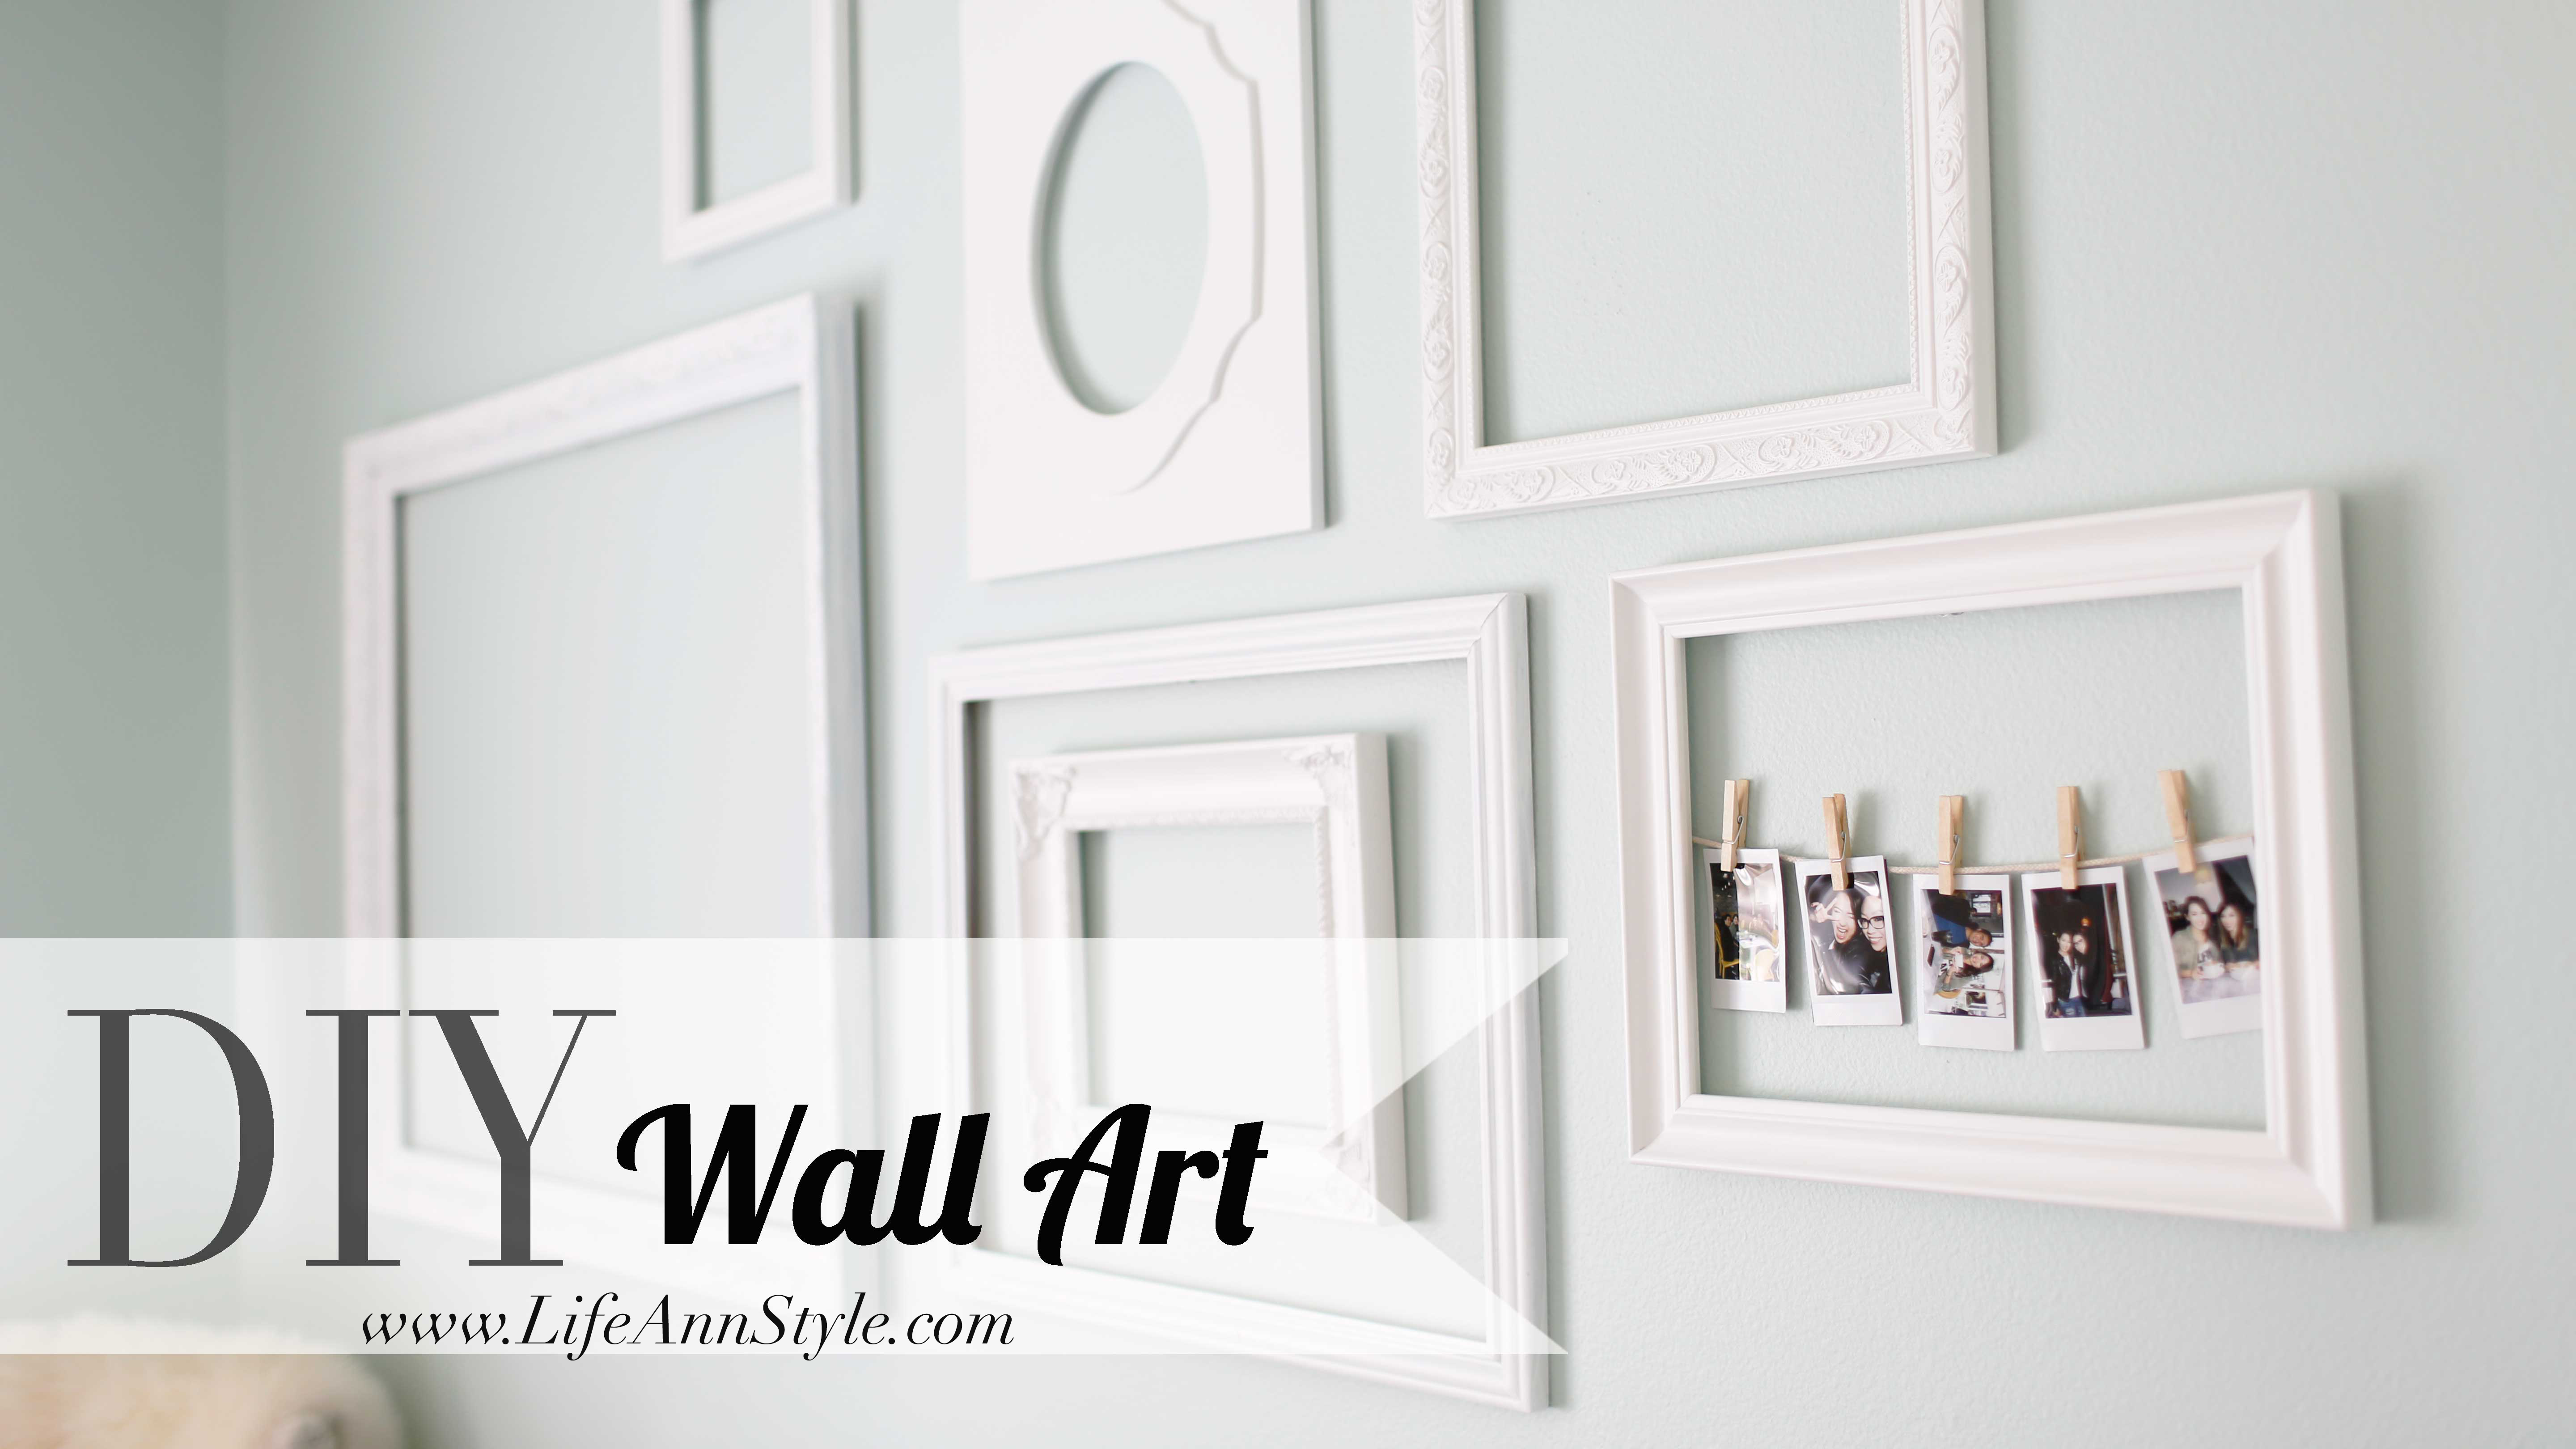 Diy Make A Statement With Empty Picture Frames As Wall Art